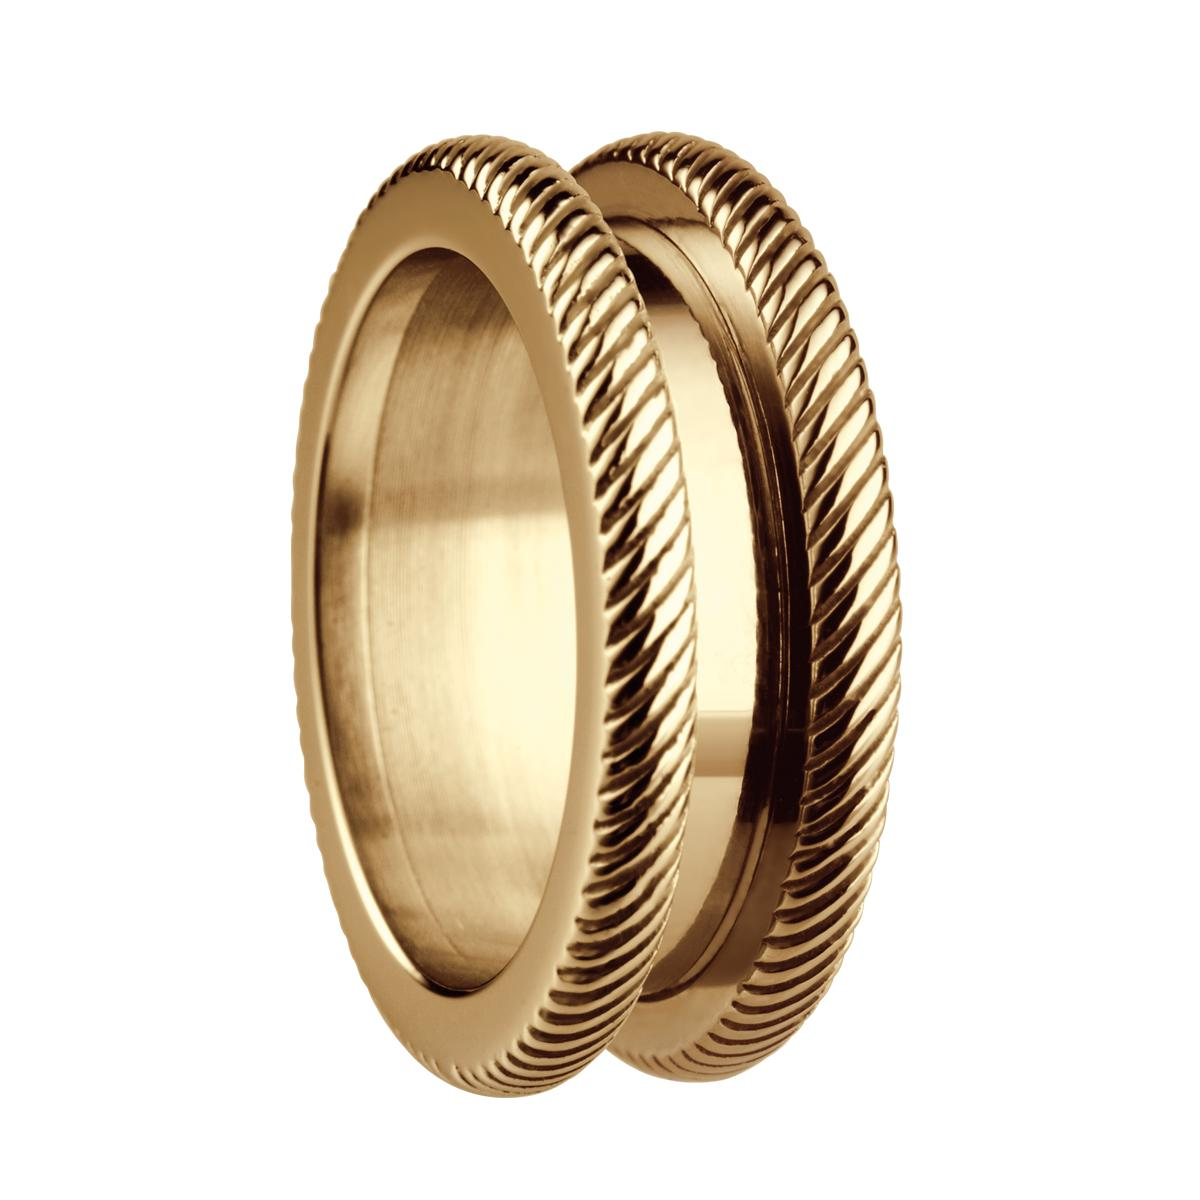 Bering Outer Ring 5212083 1